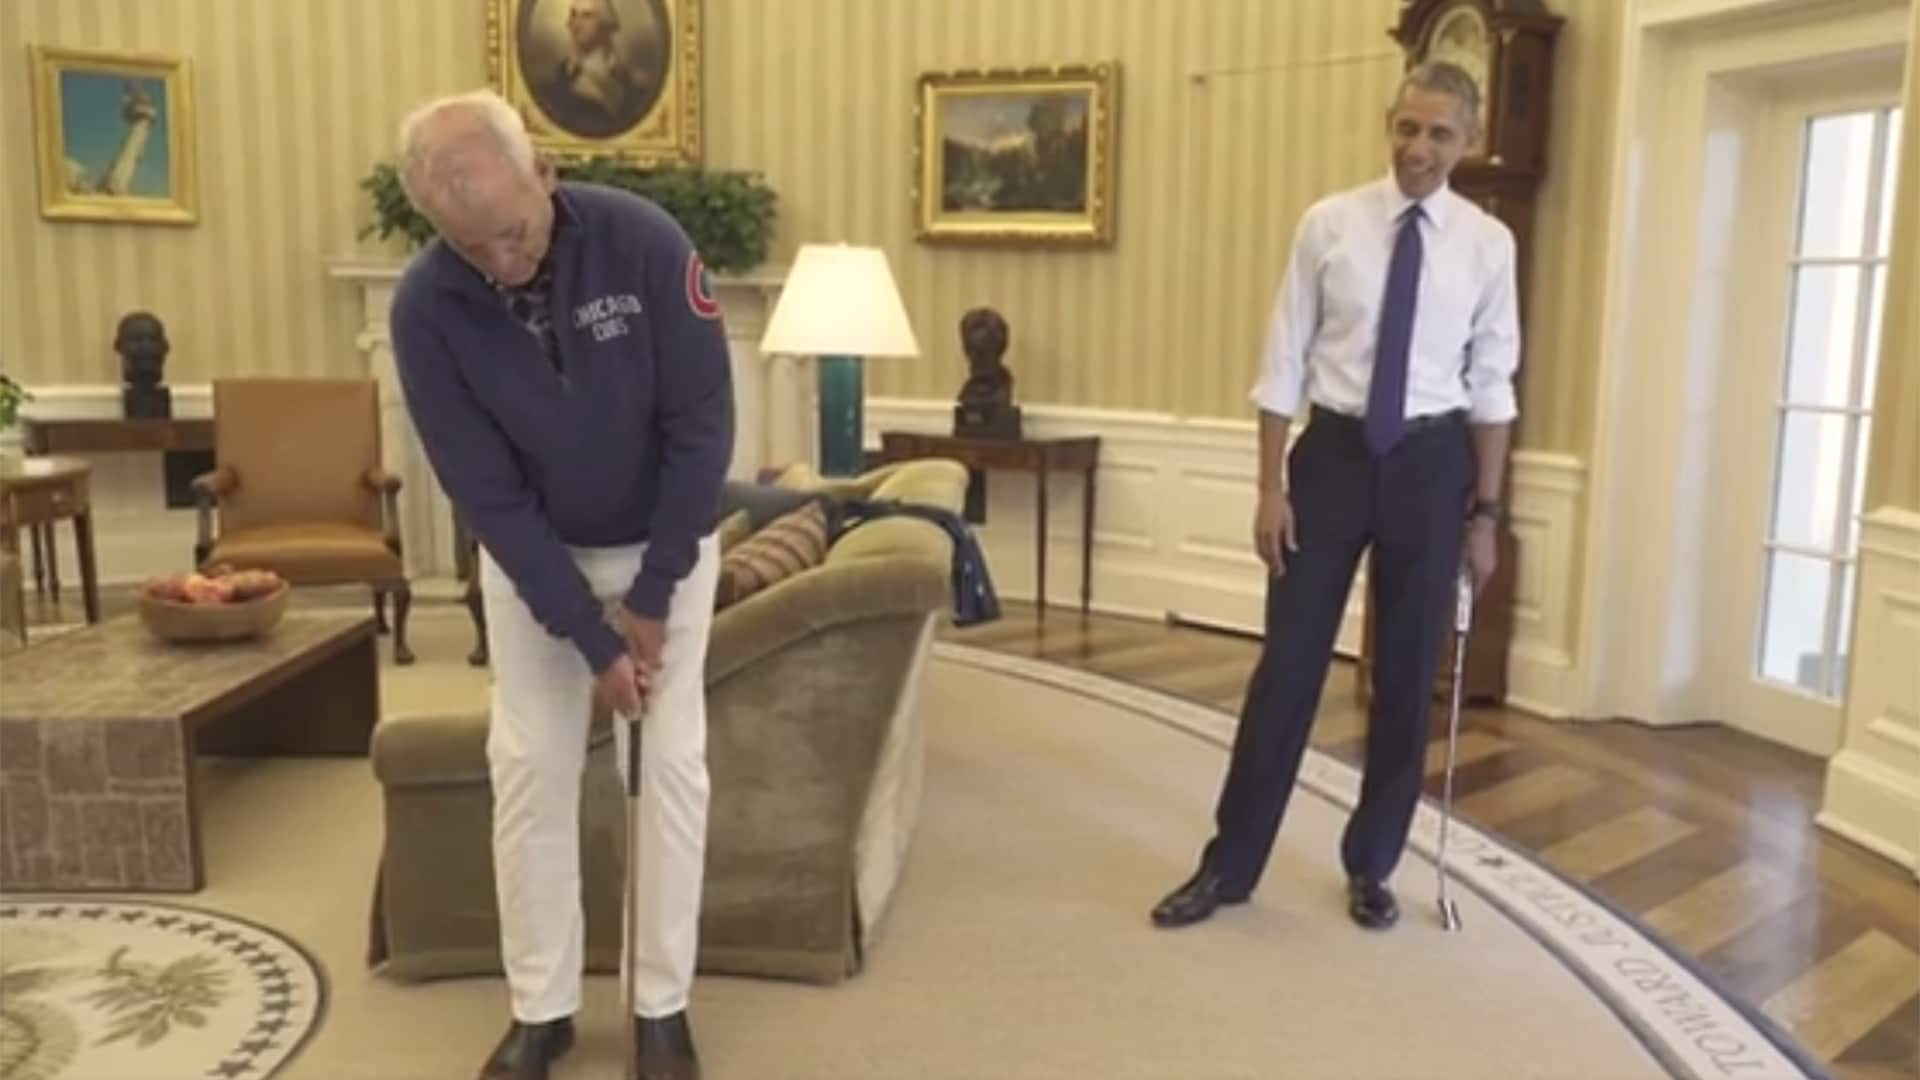 Bill Murray Obama talk trash while putting in Oval Office Golf